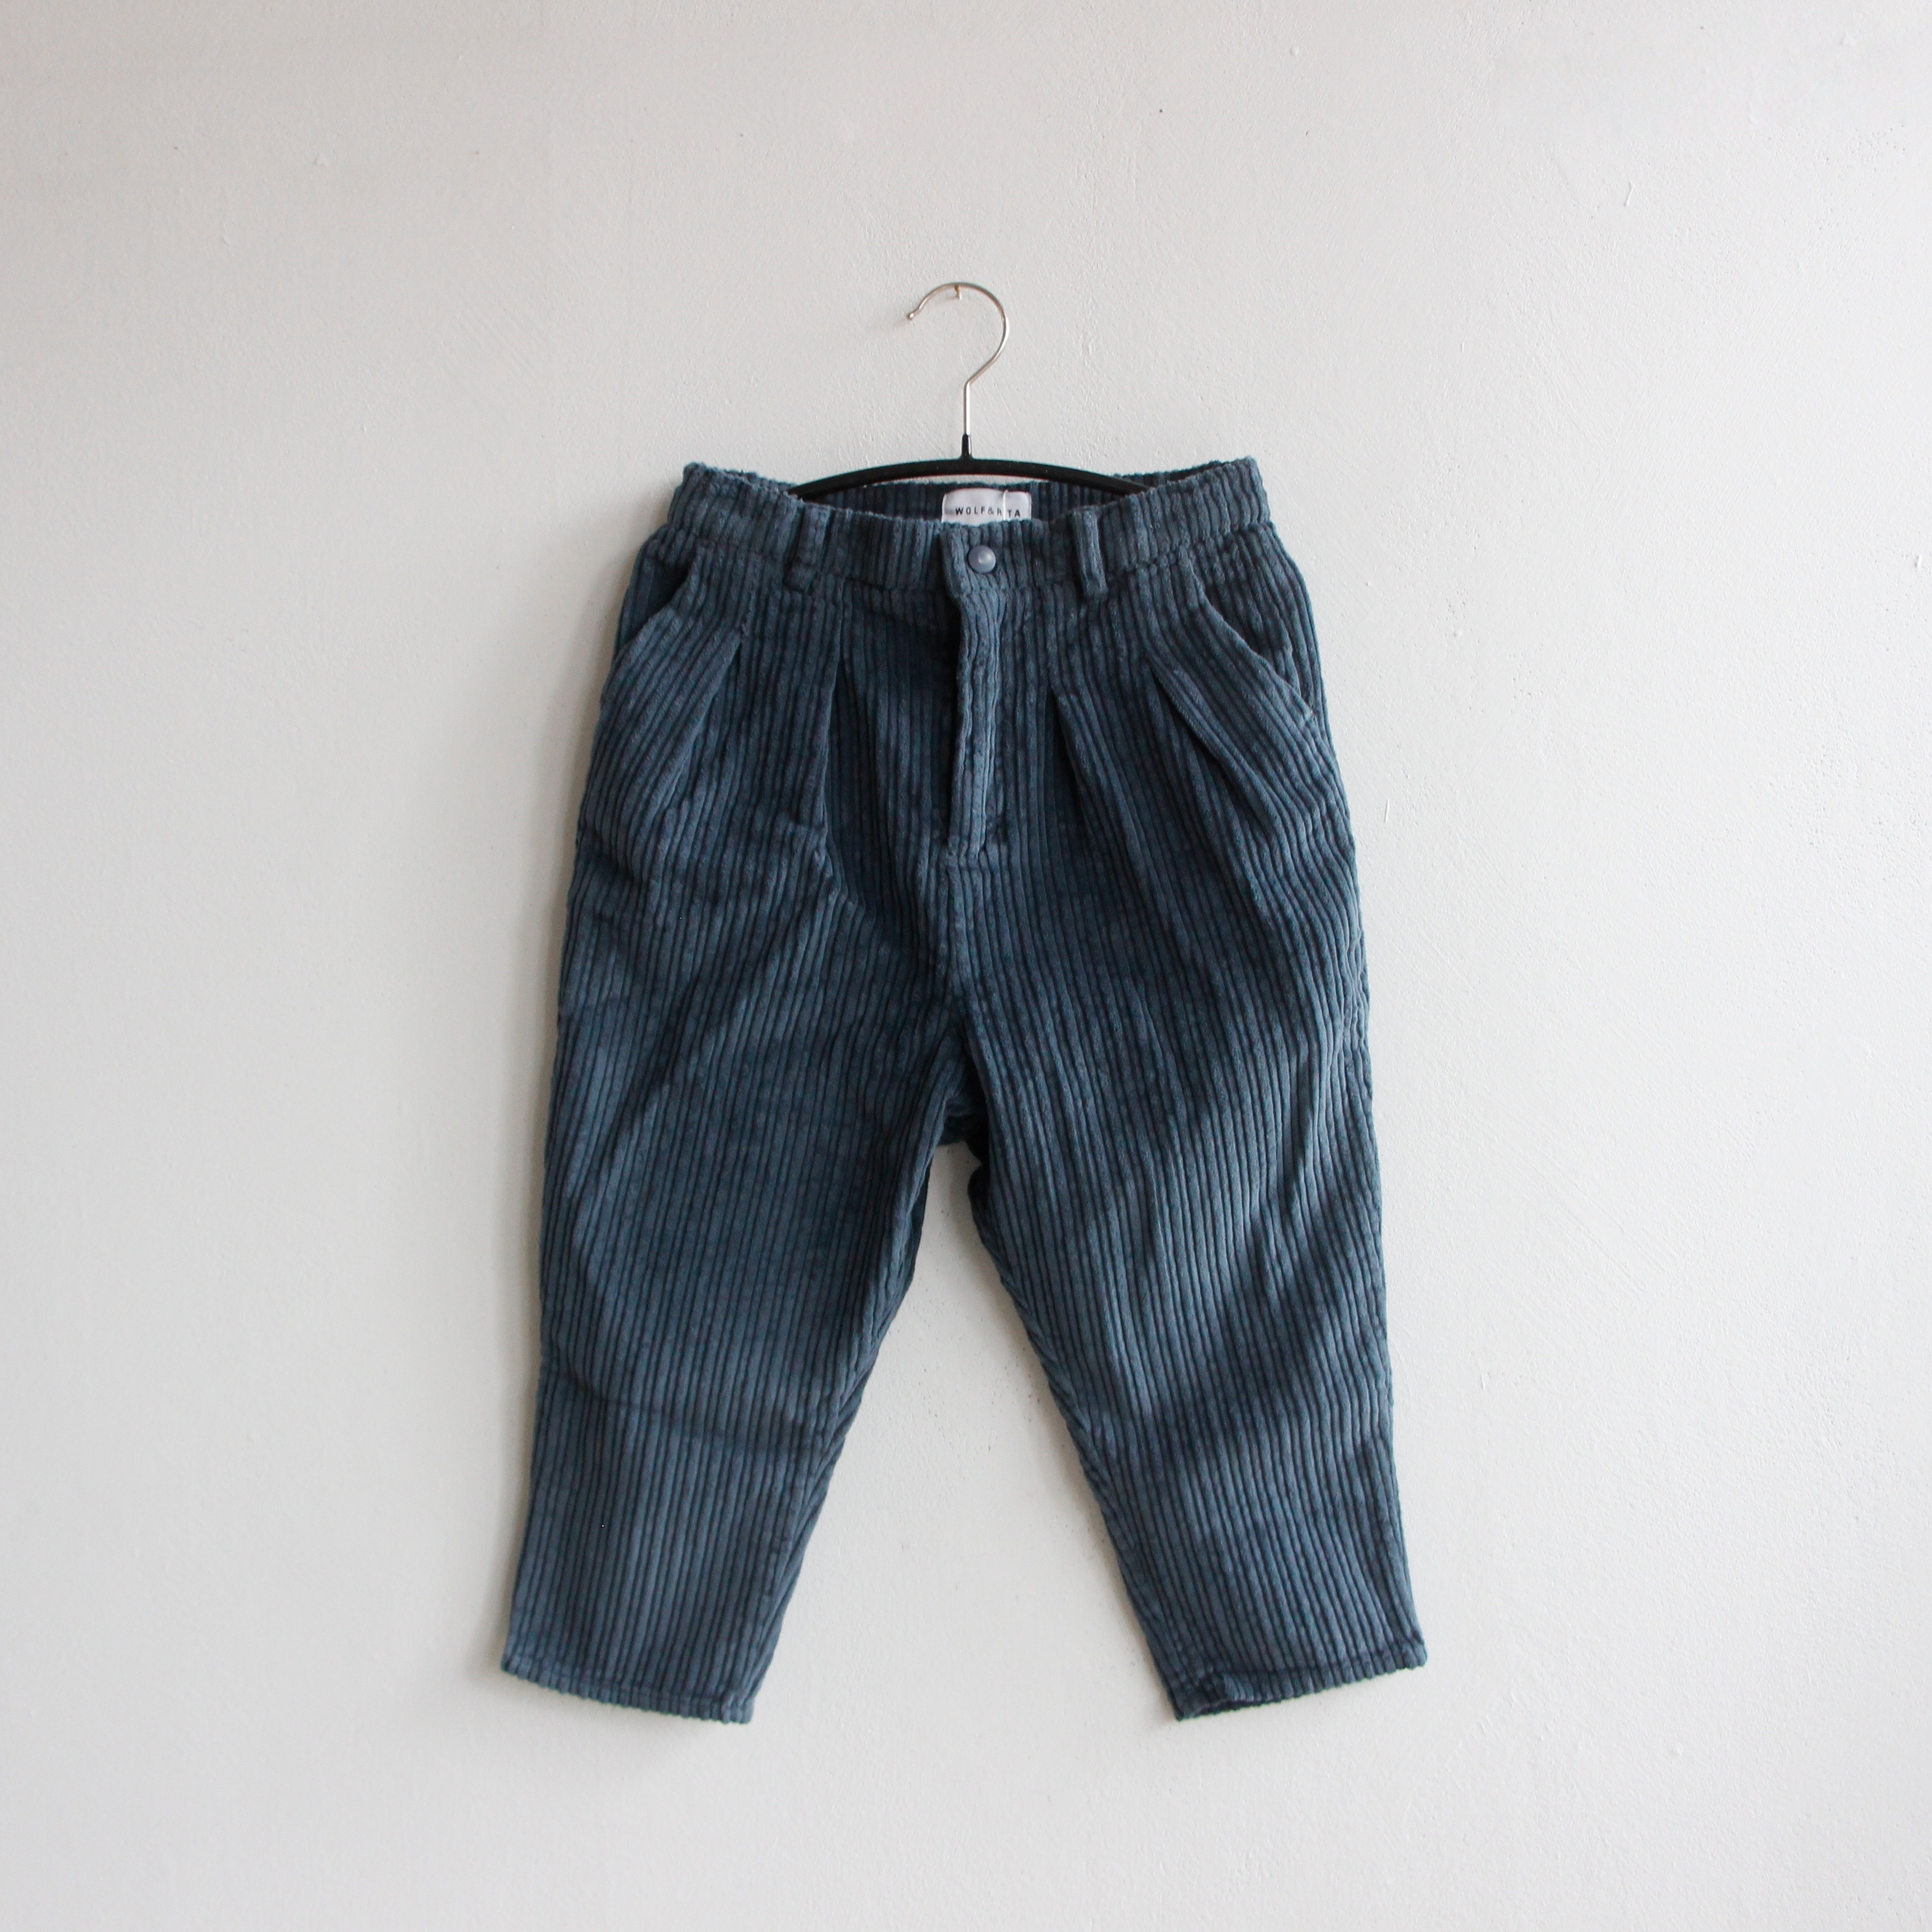 《WOLF & RITA 2020AW》ANDRE trousers / corduroy pale blue